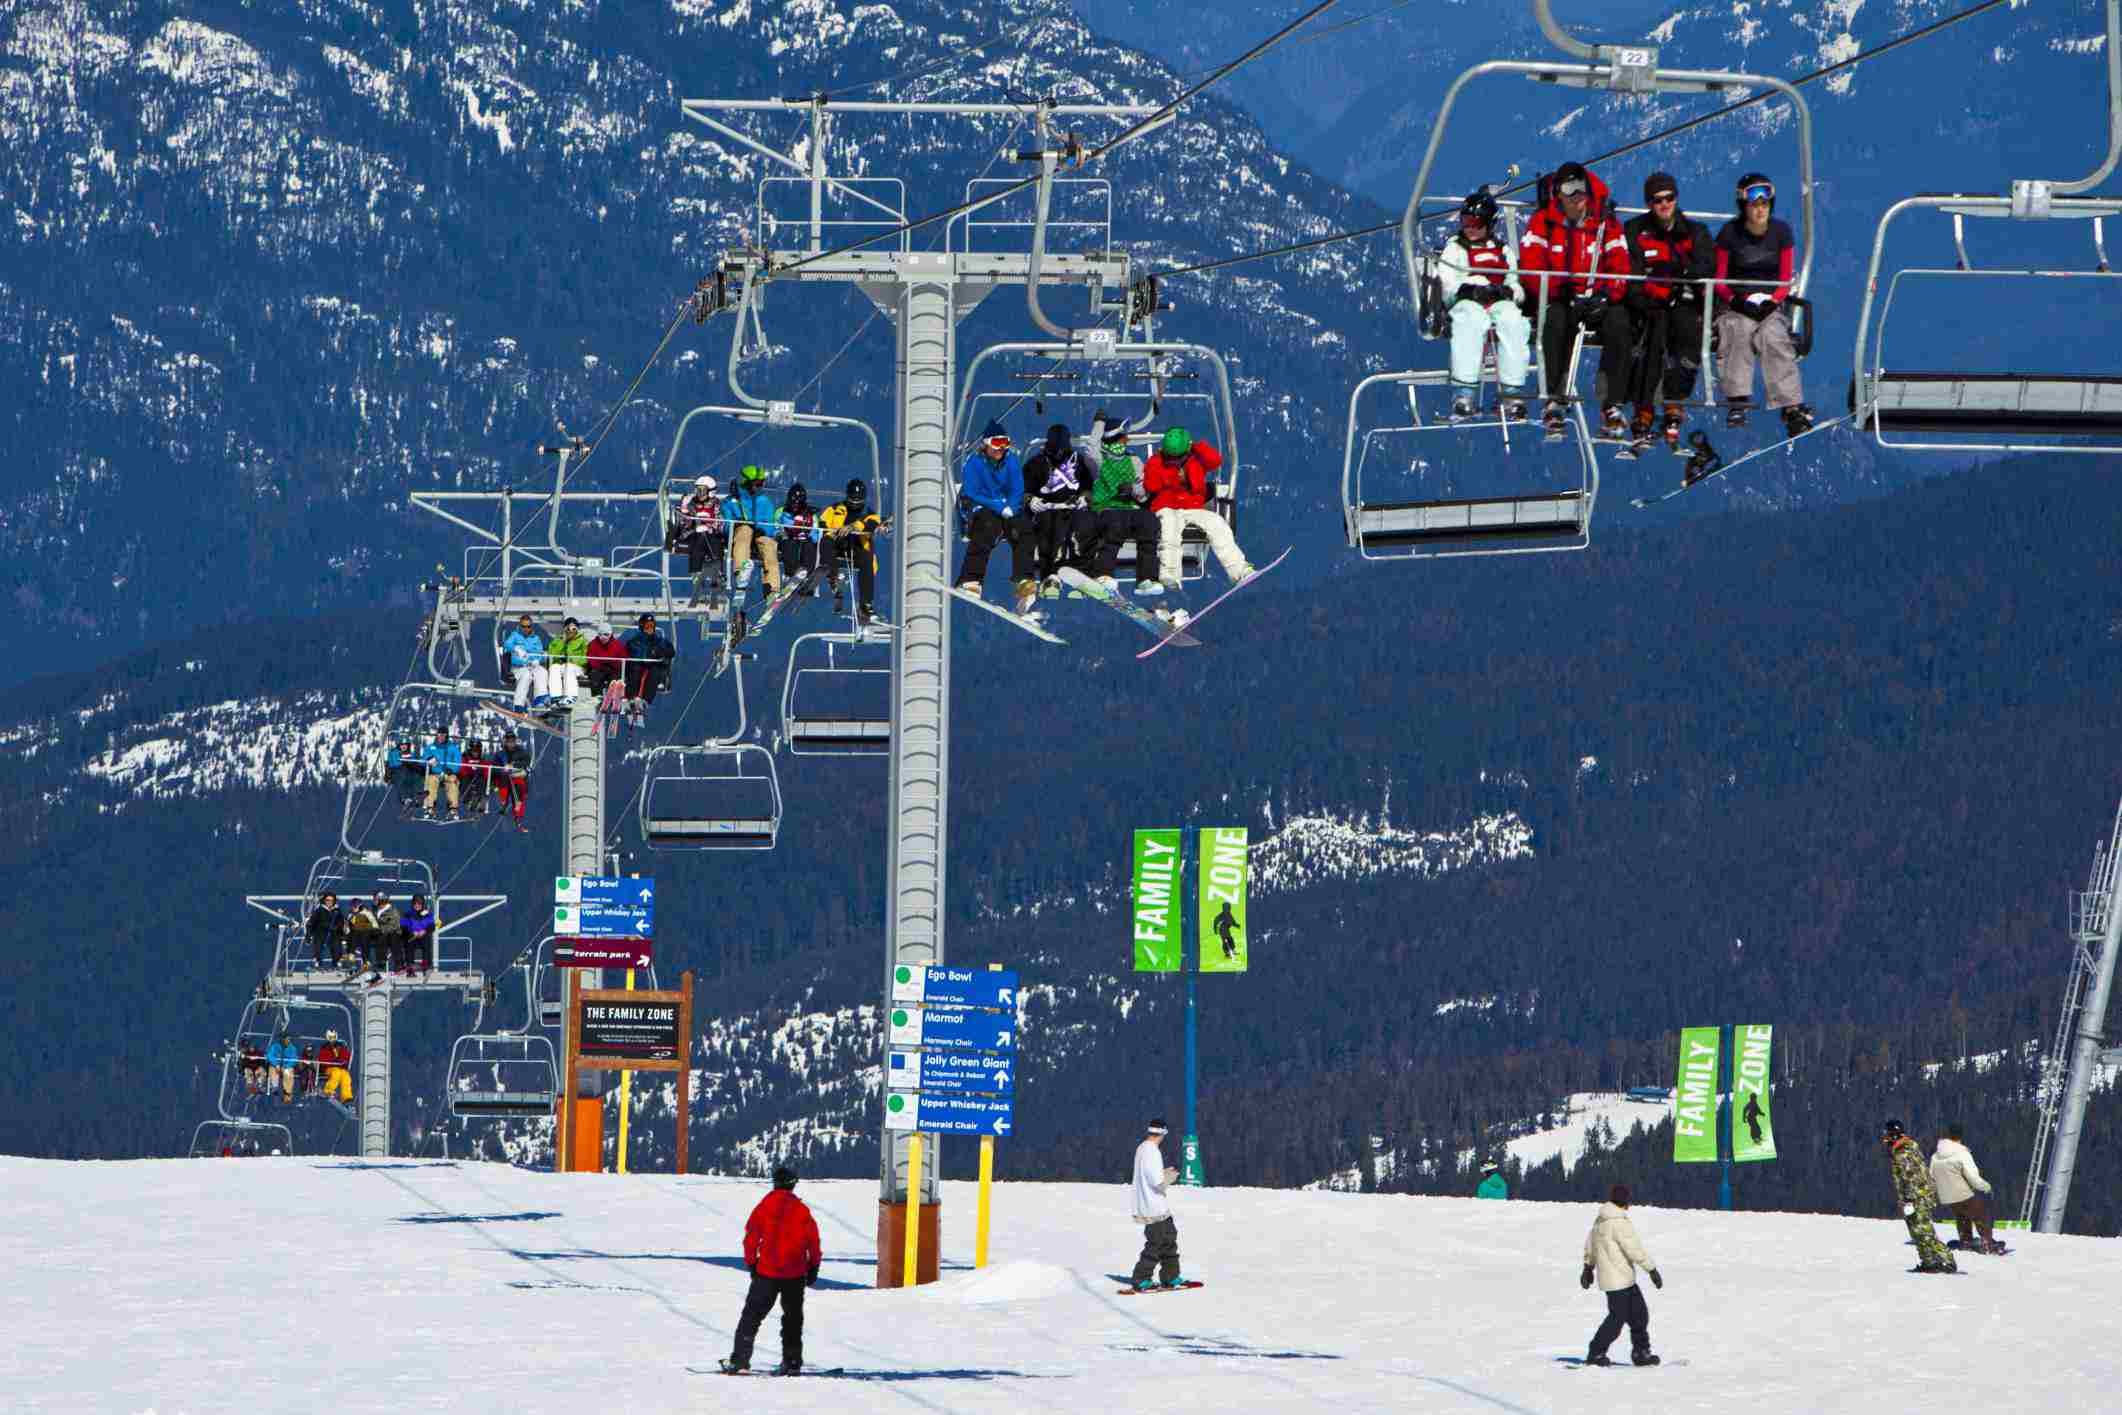 skiing and snowboarding near vancouver